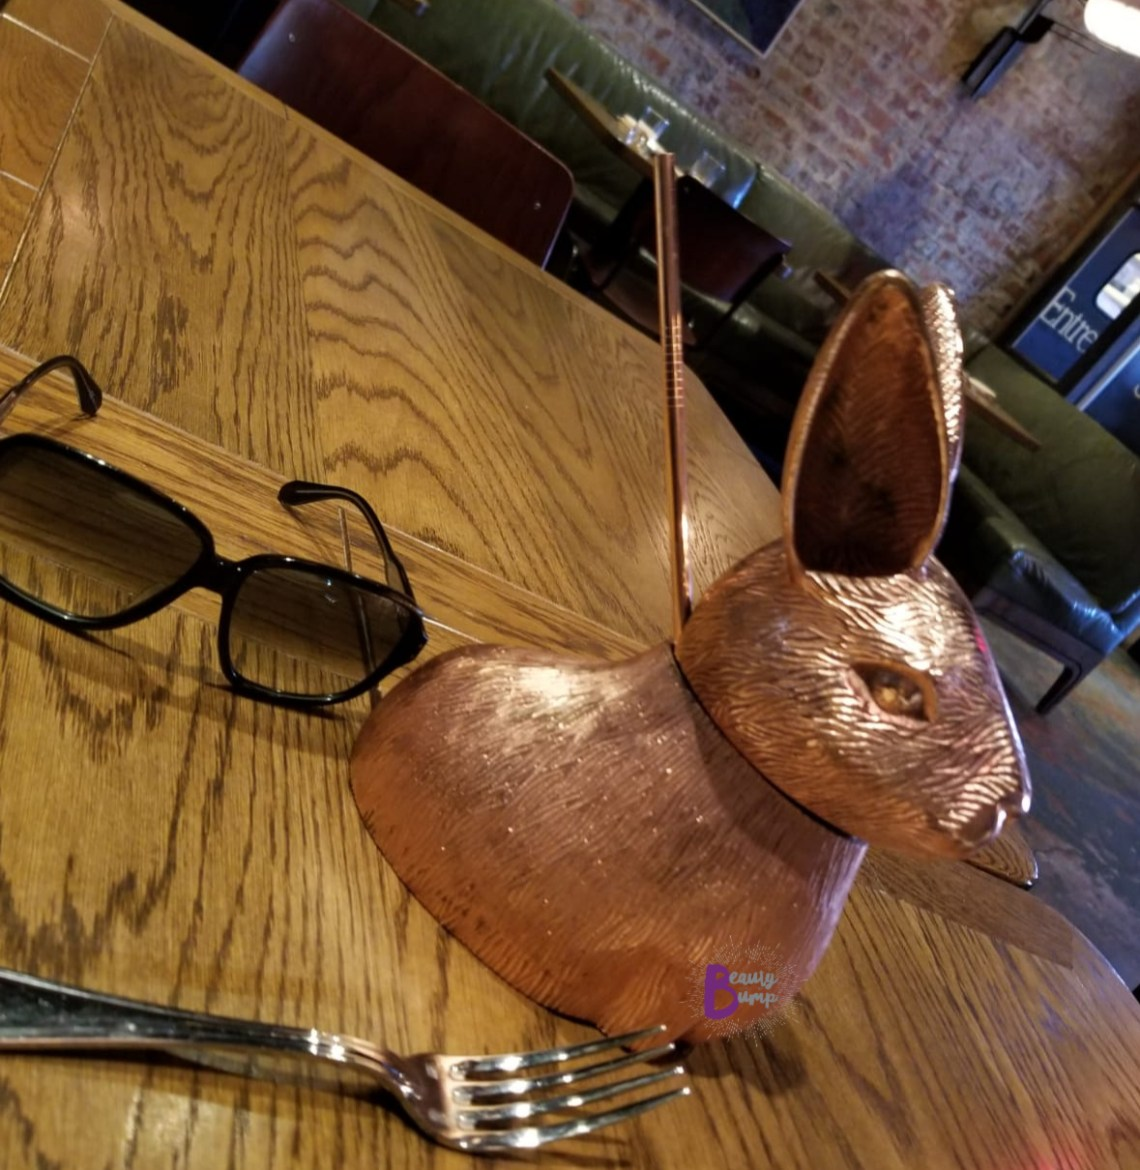 The Signature Drink - Copper Bunny